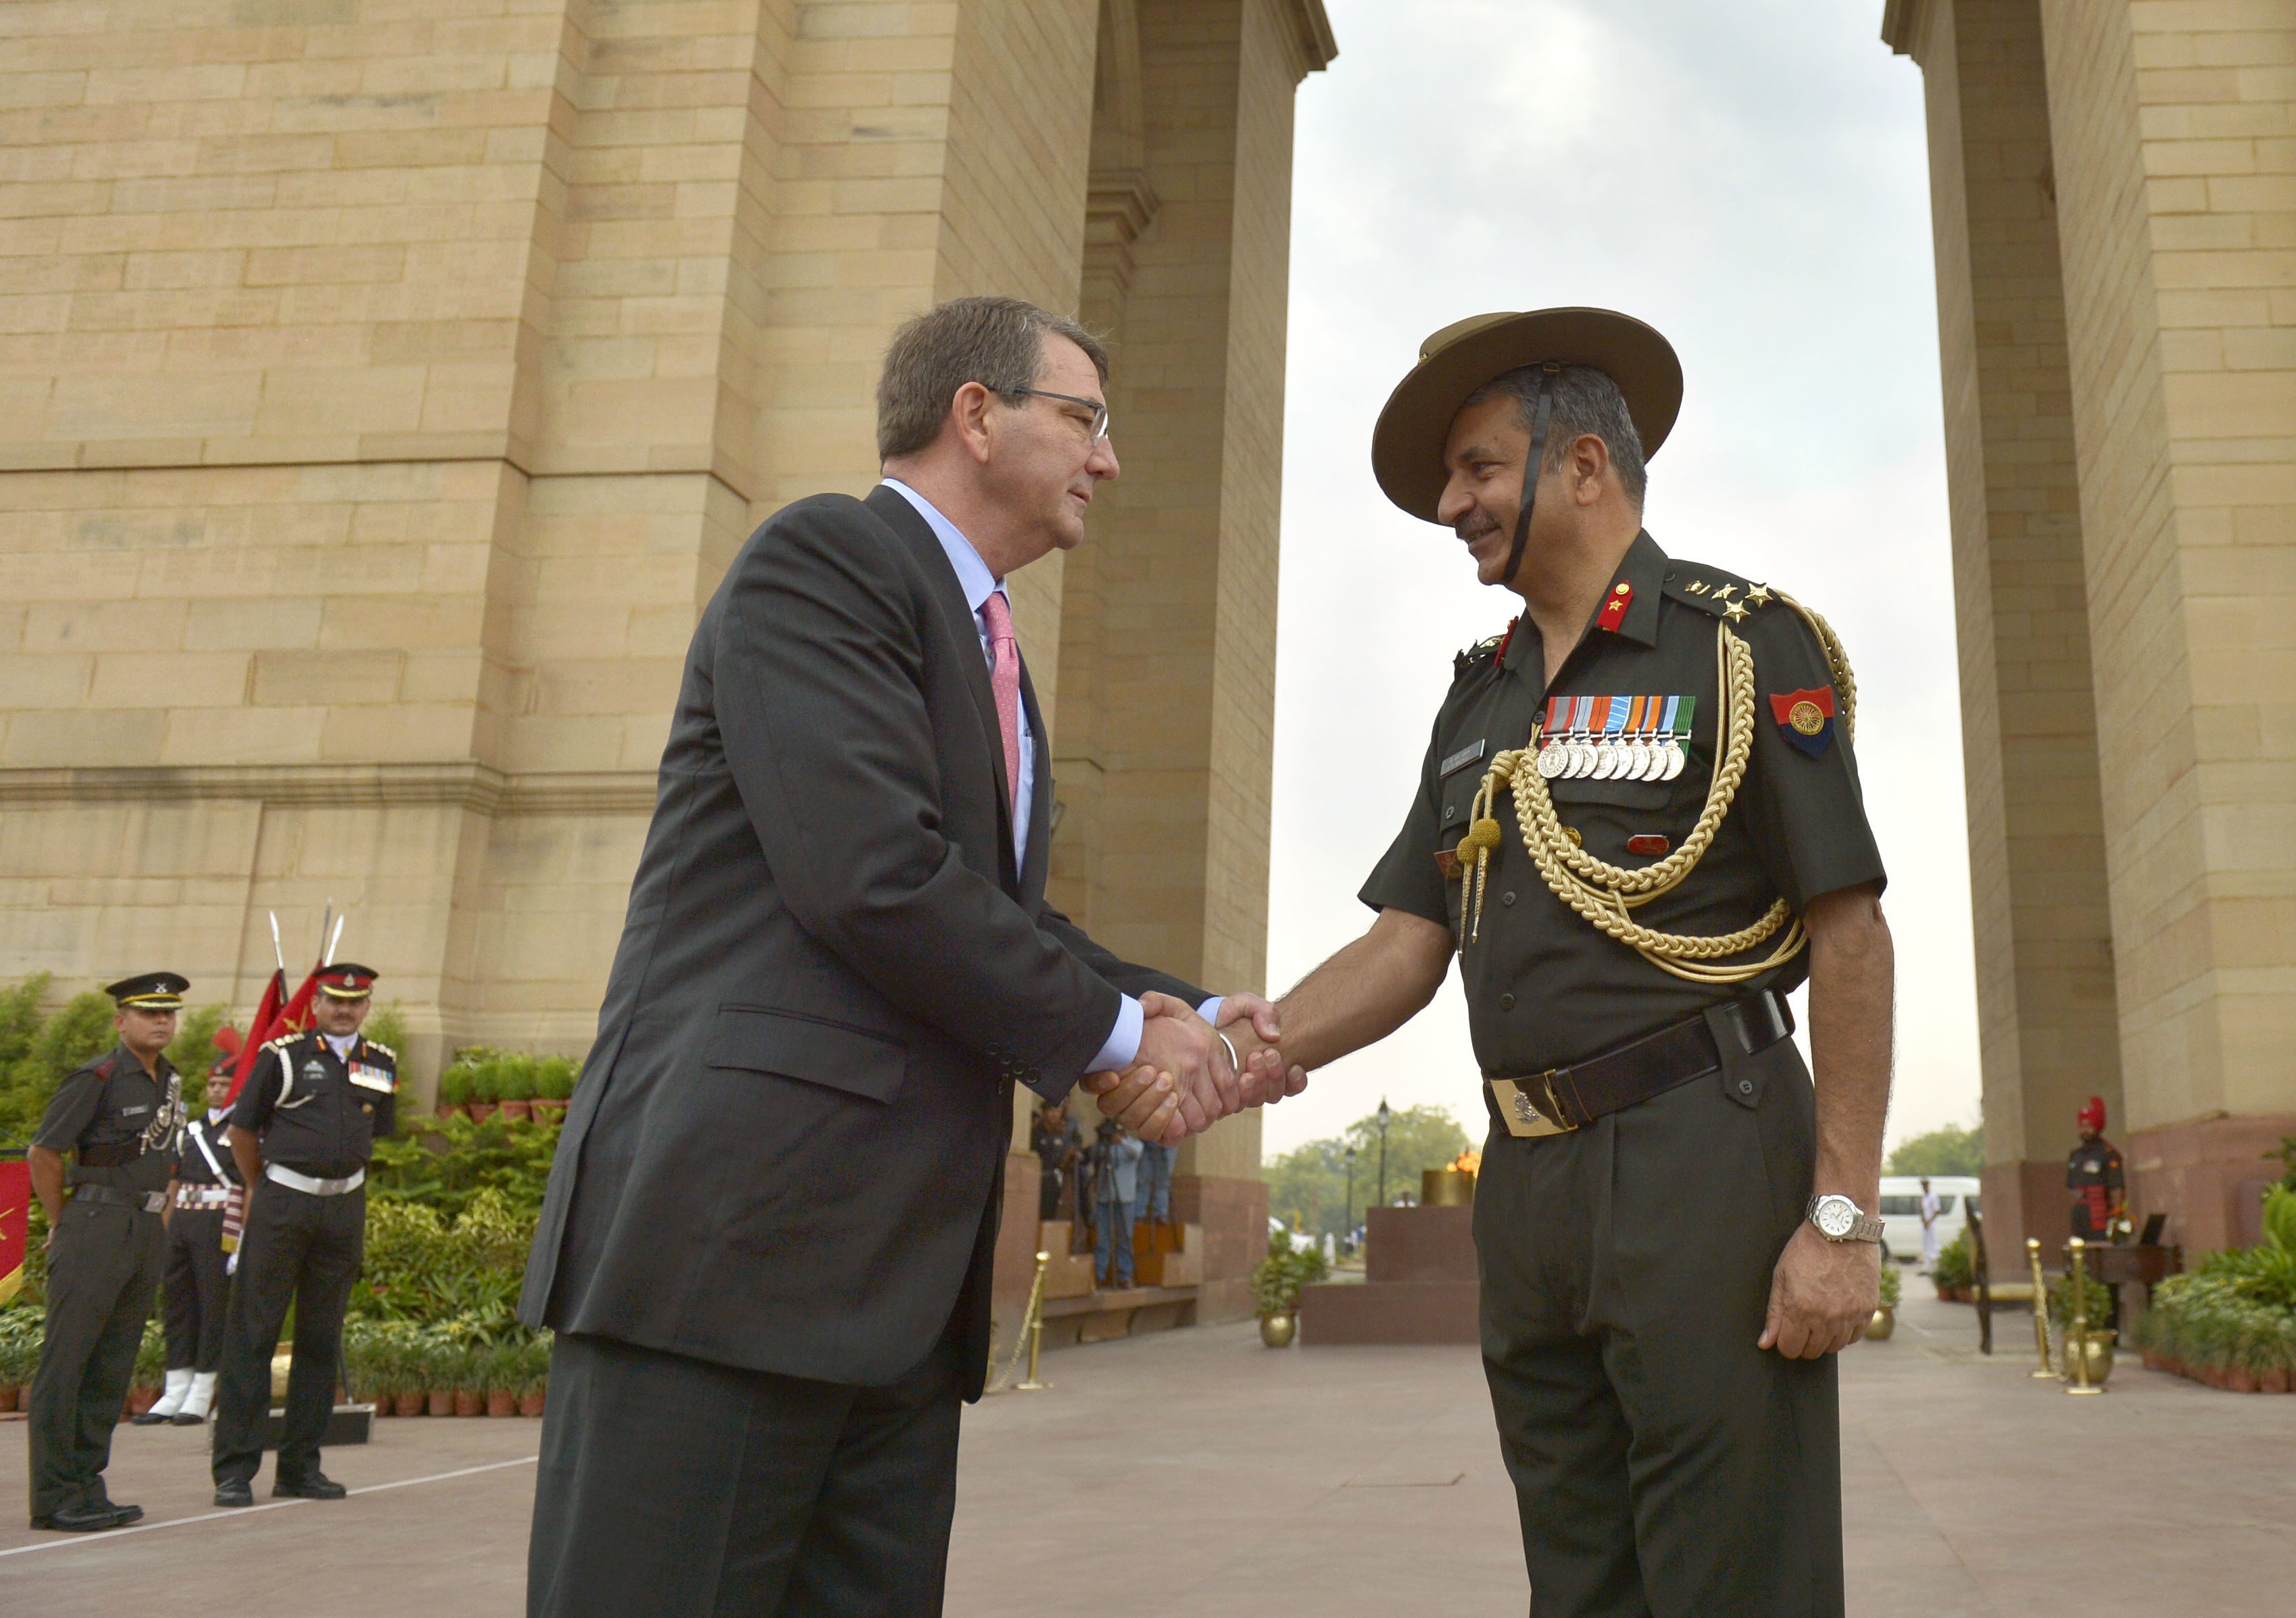 Secretary of Defense Ash Carter shakes hands with a member of the honor guard that received him to lay a wreath at India Gate in New Delhi, India, June 3, 2015. Department of Defense Photo